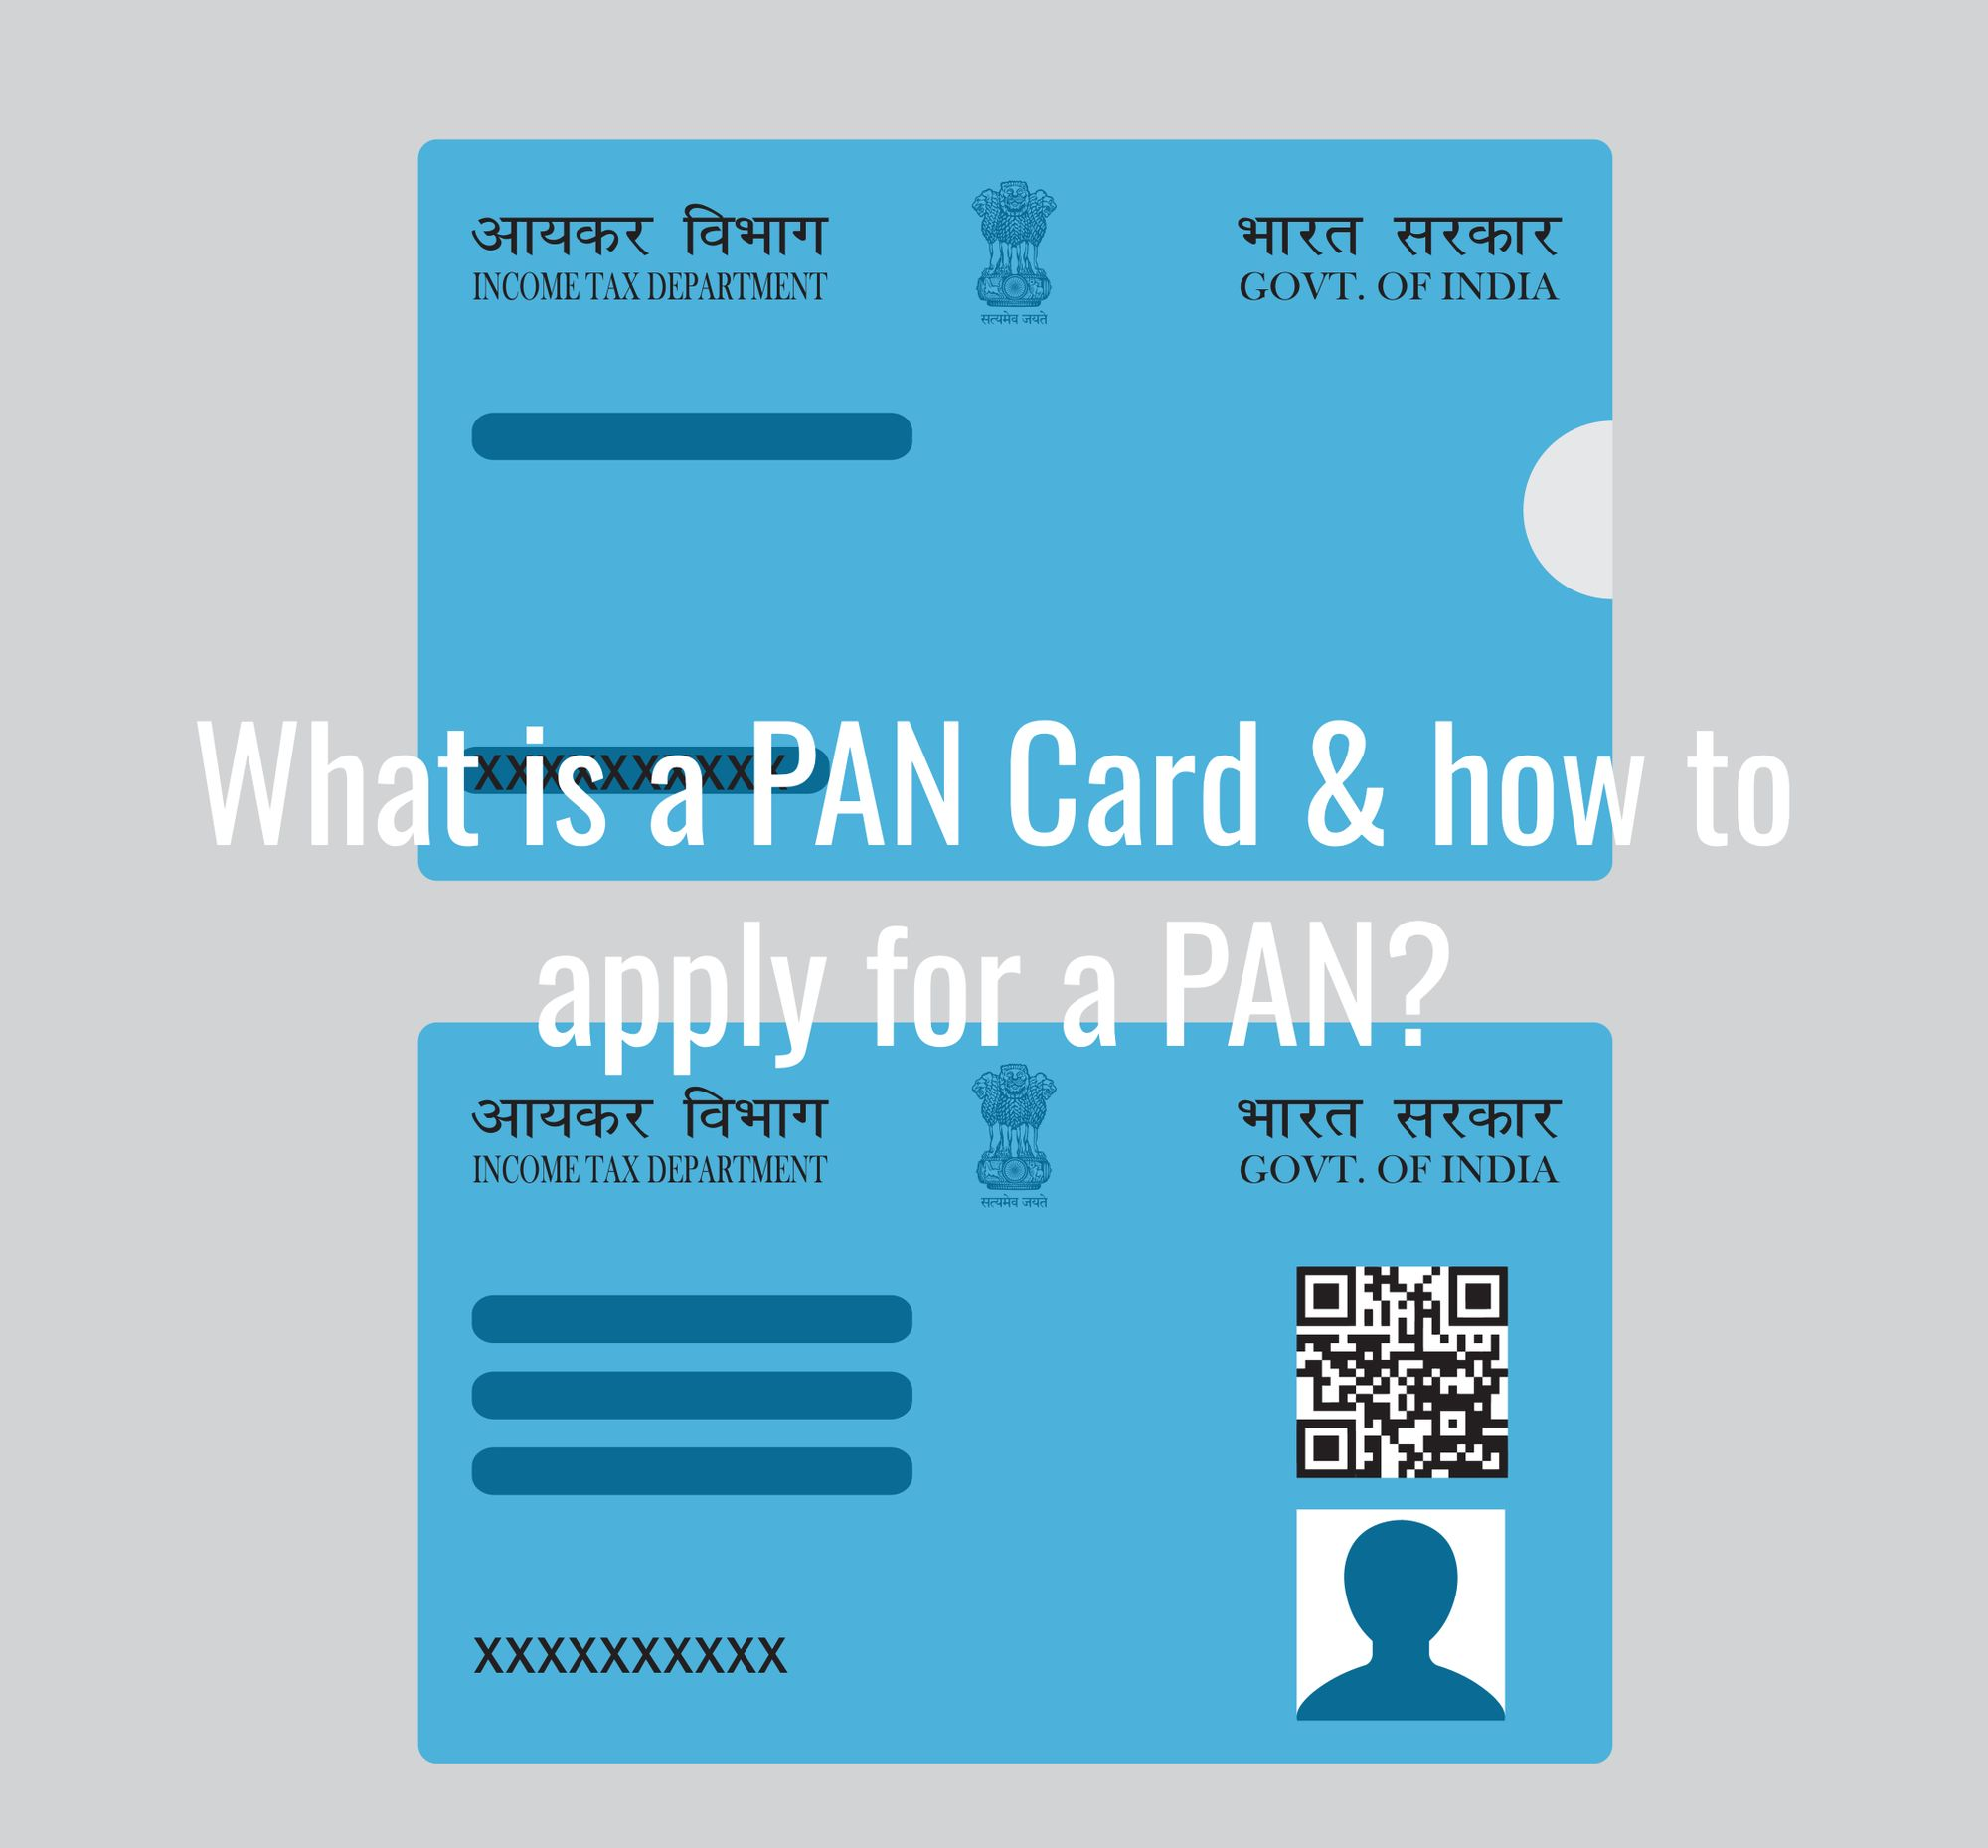 What Is a PAN Card & Why Do You Need It?